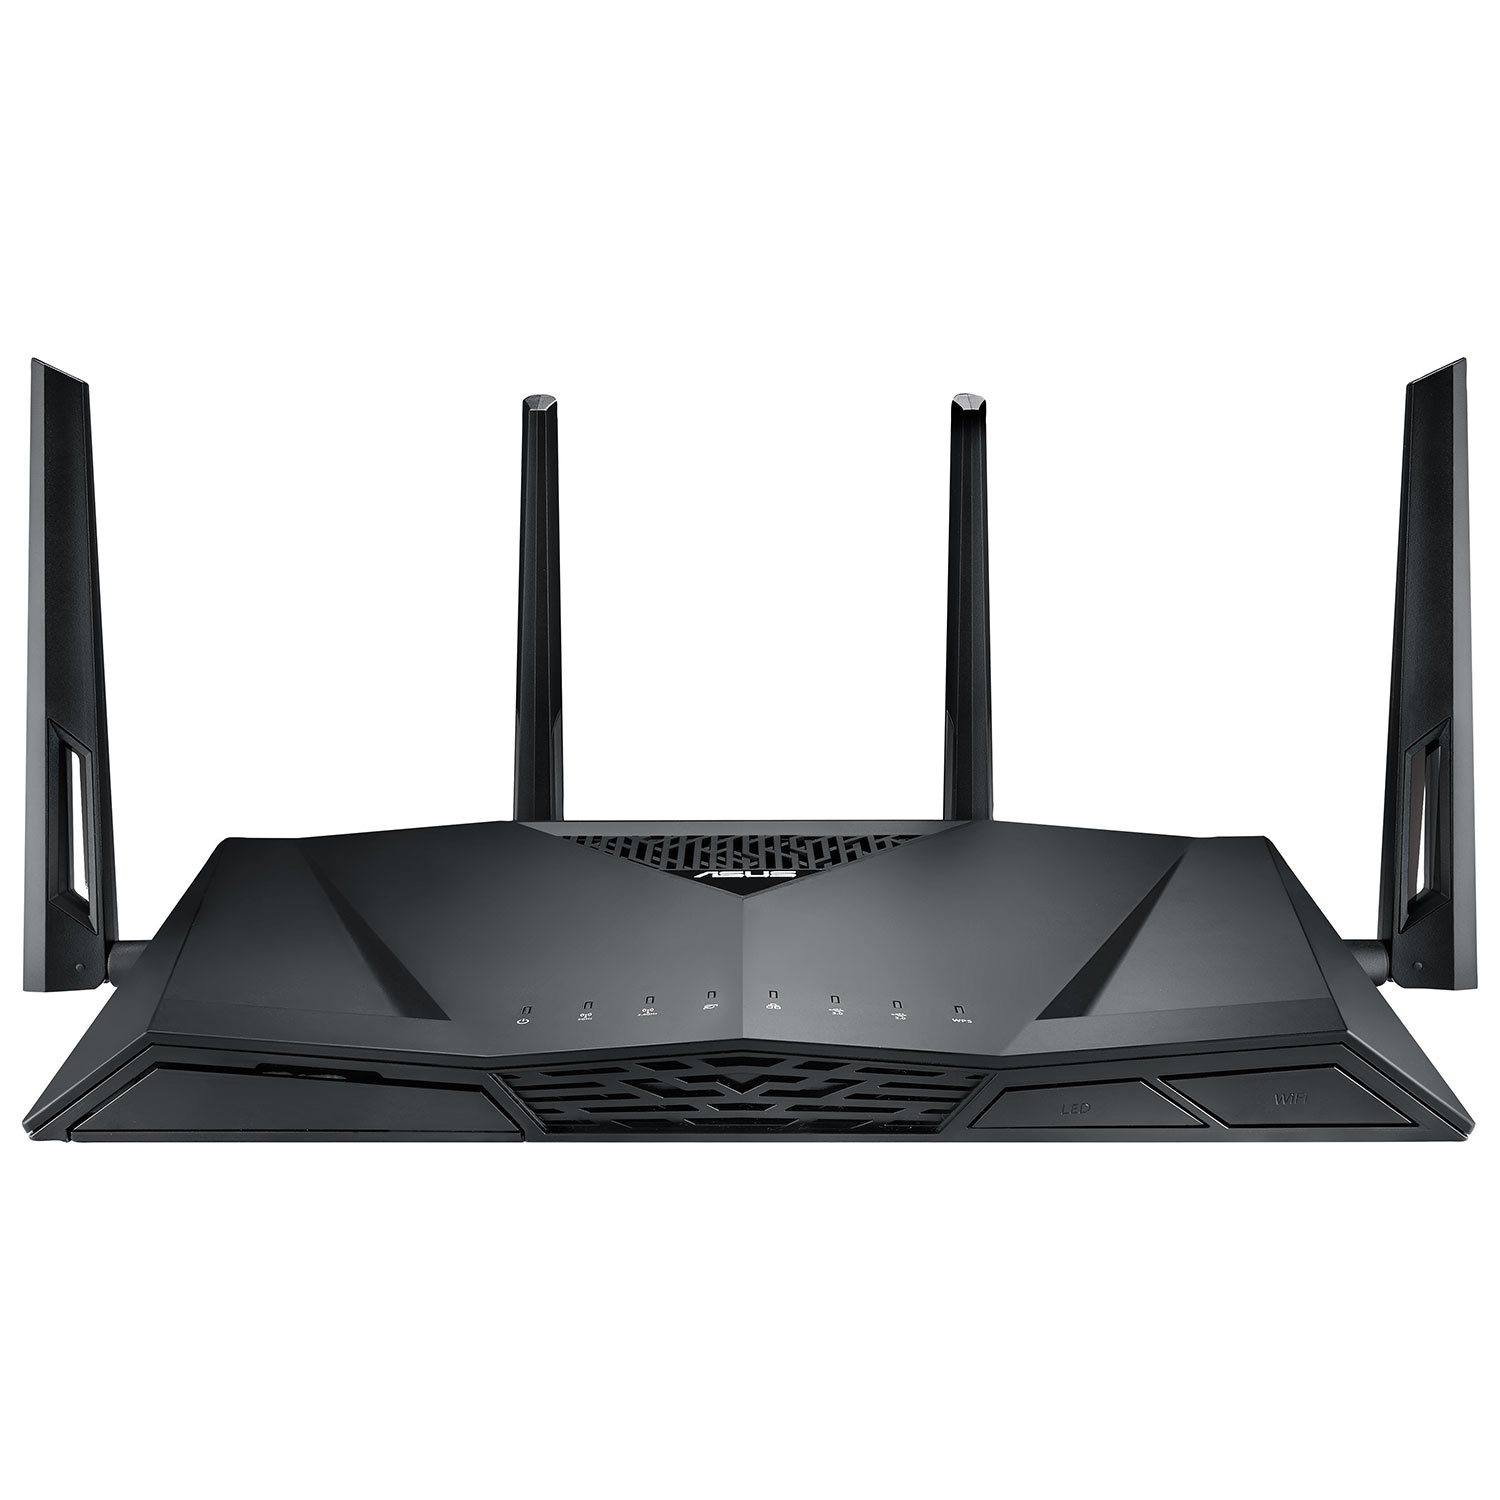 ASUS AC3100 4x4 Wireless Dual Band 4 Port Gigabit Gaming Router with